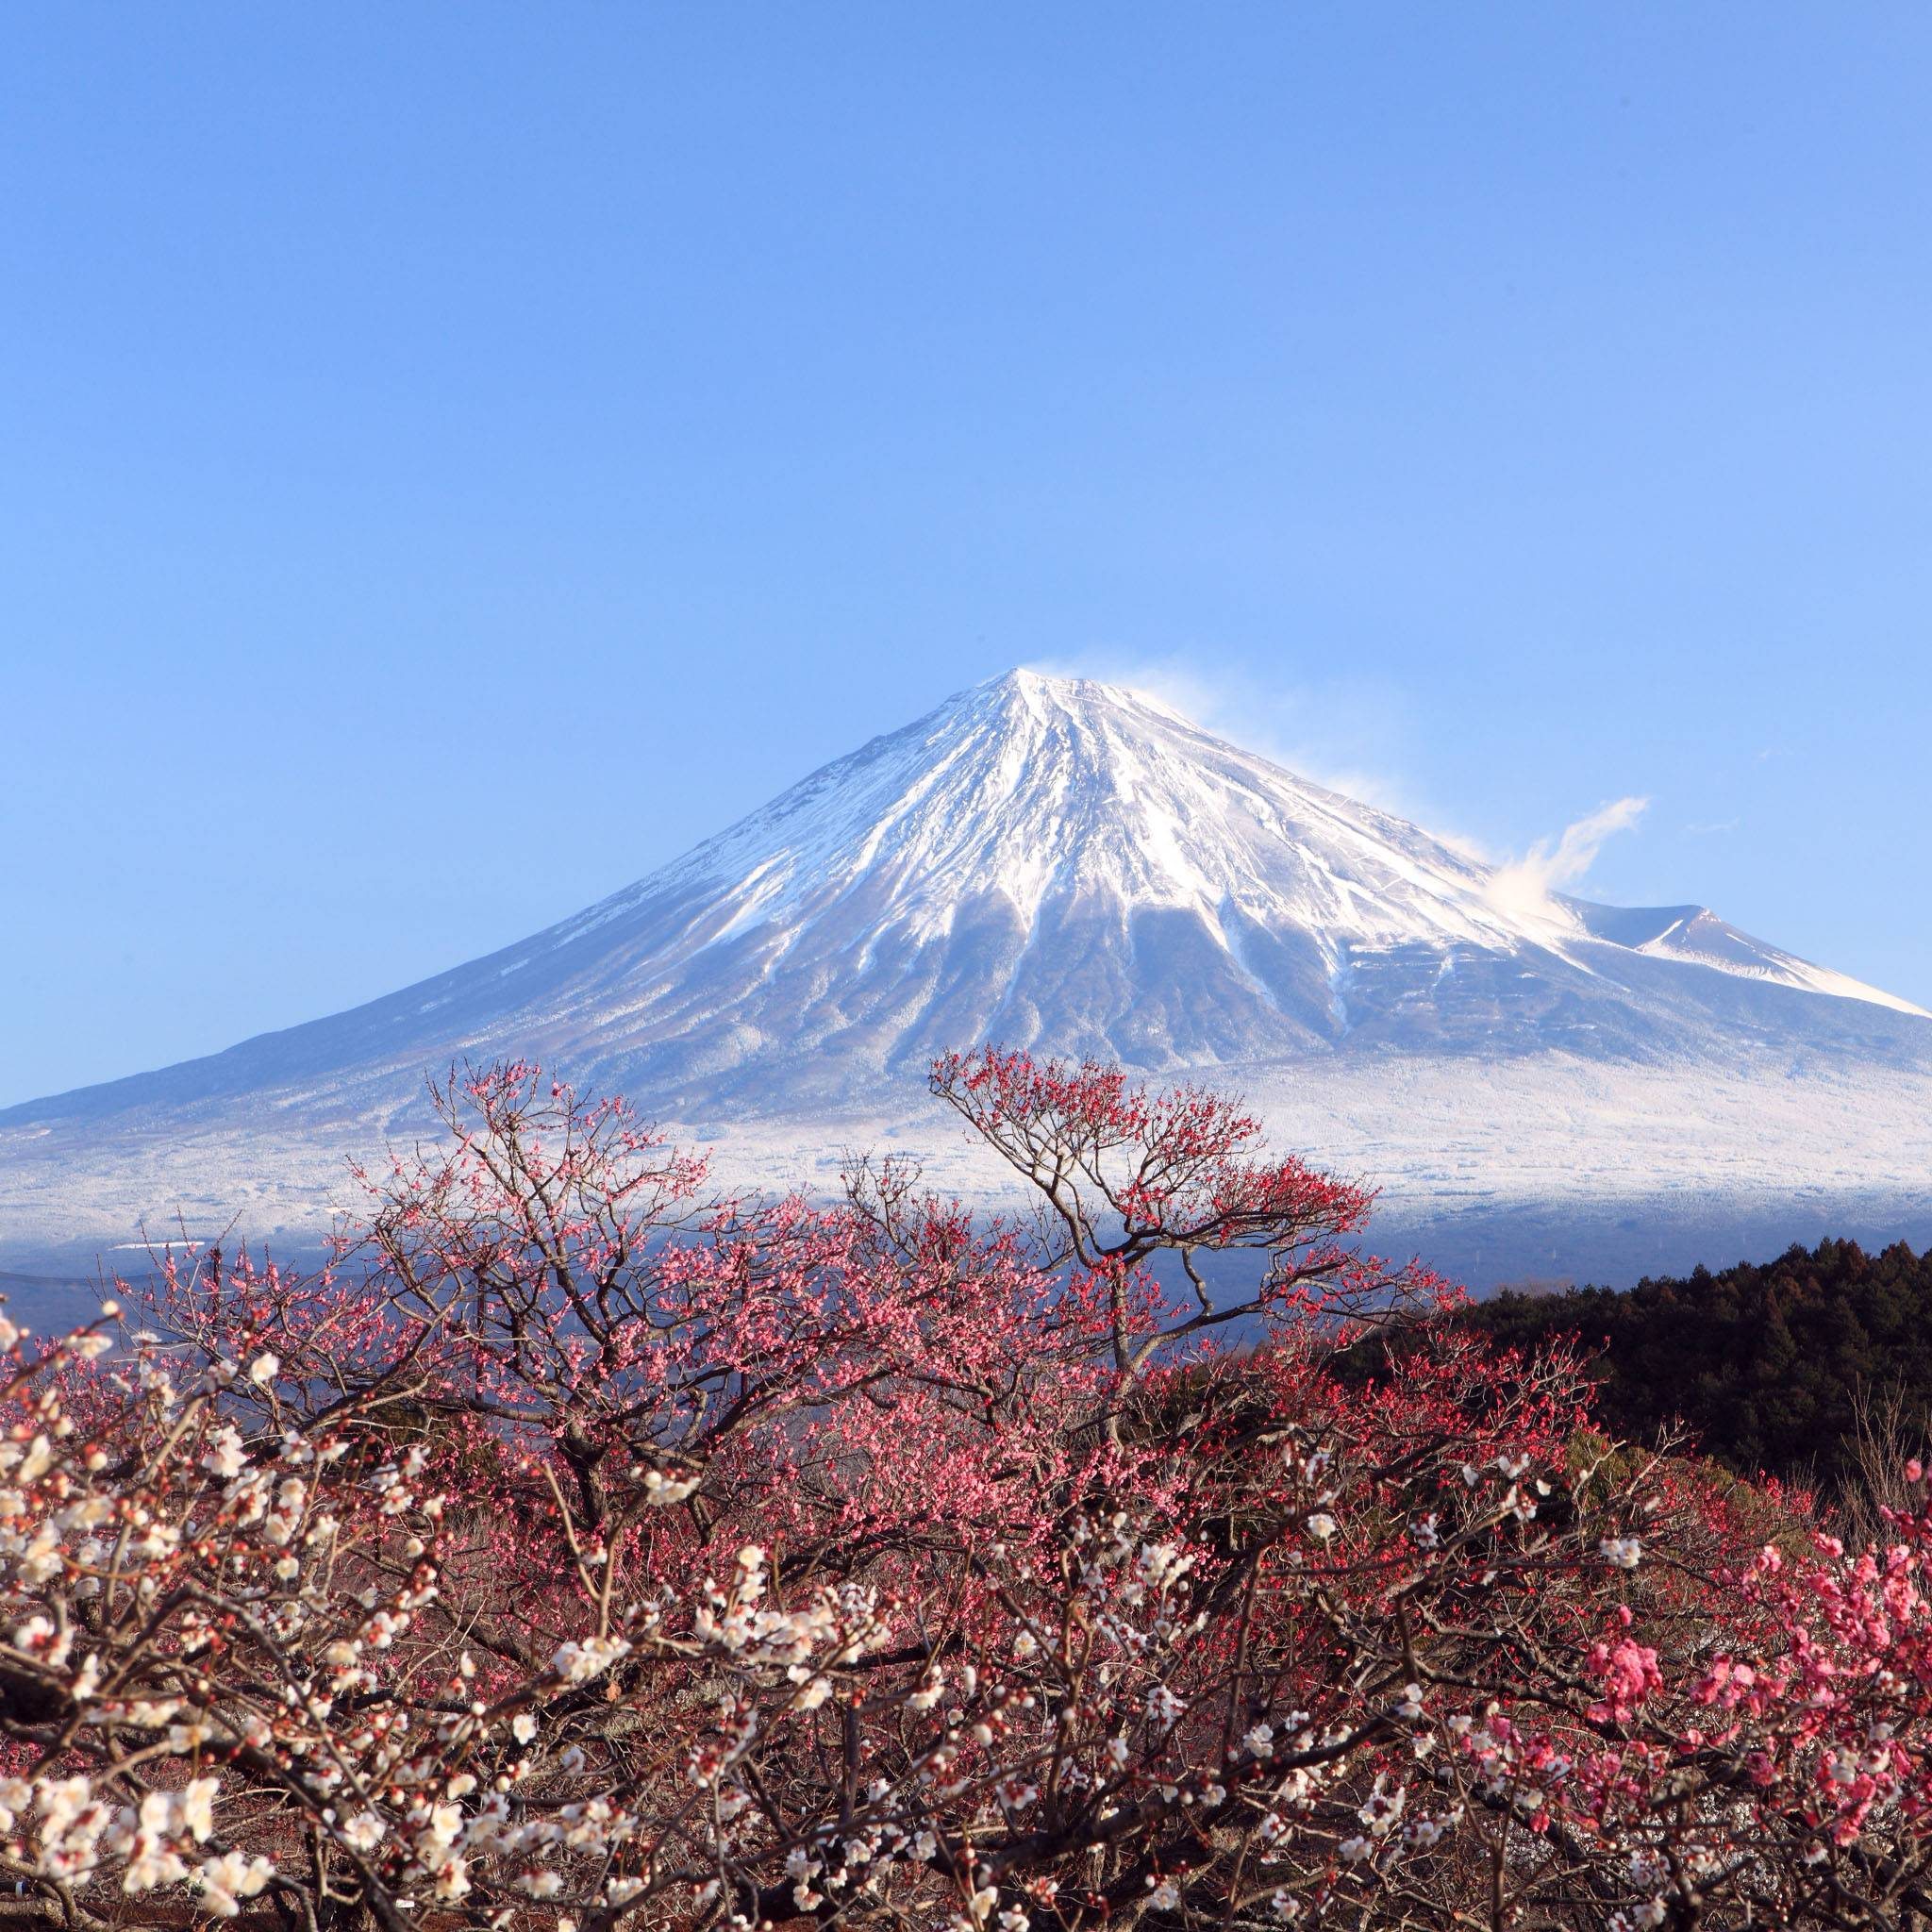 Strawberries, Shibas, Fuji-San, and the Nicest Highway Rest Stop in The World